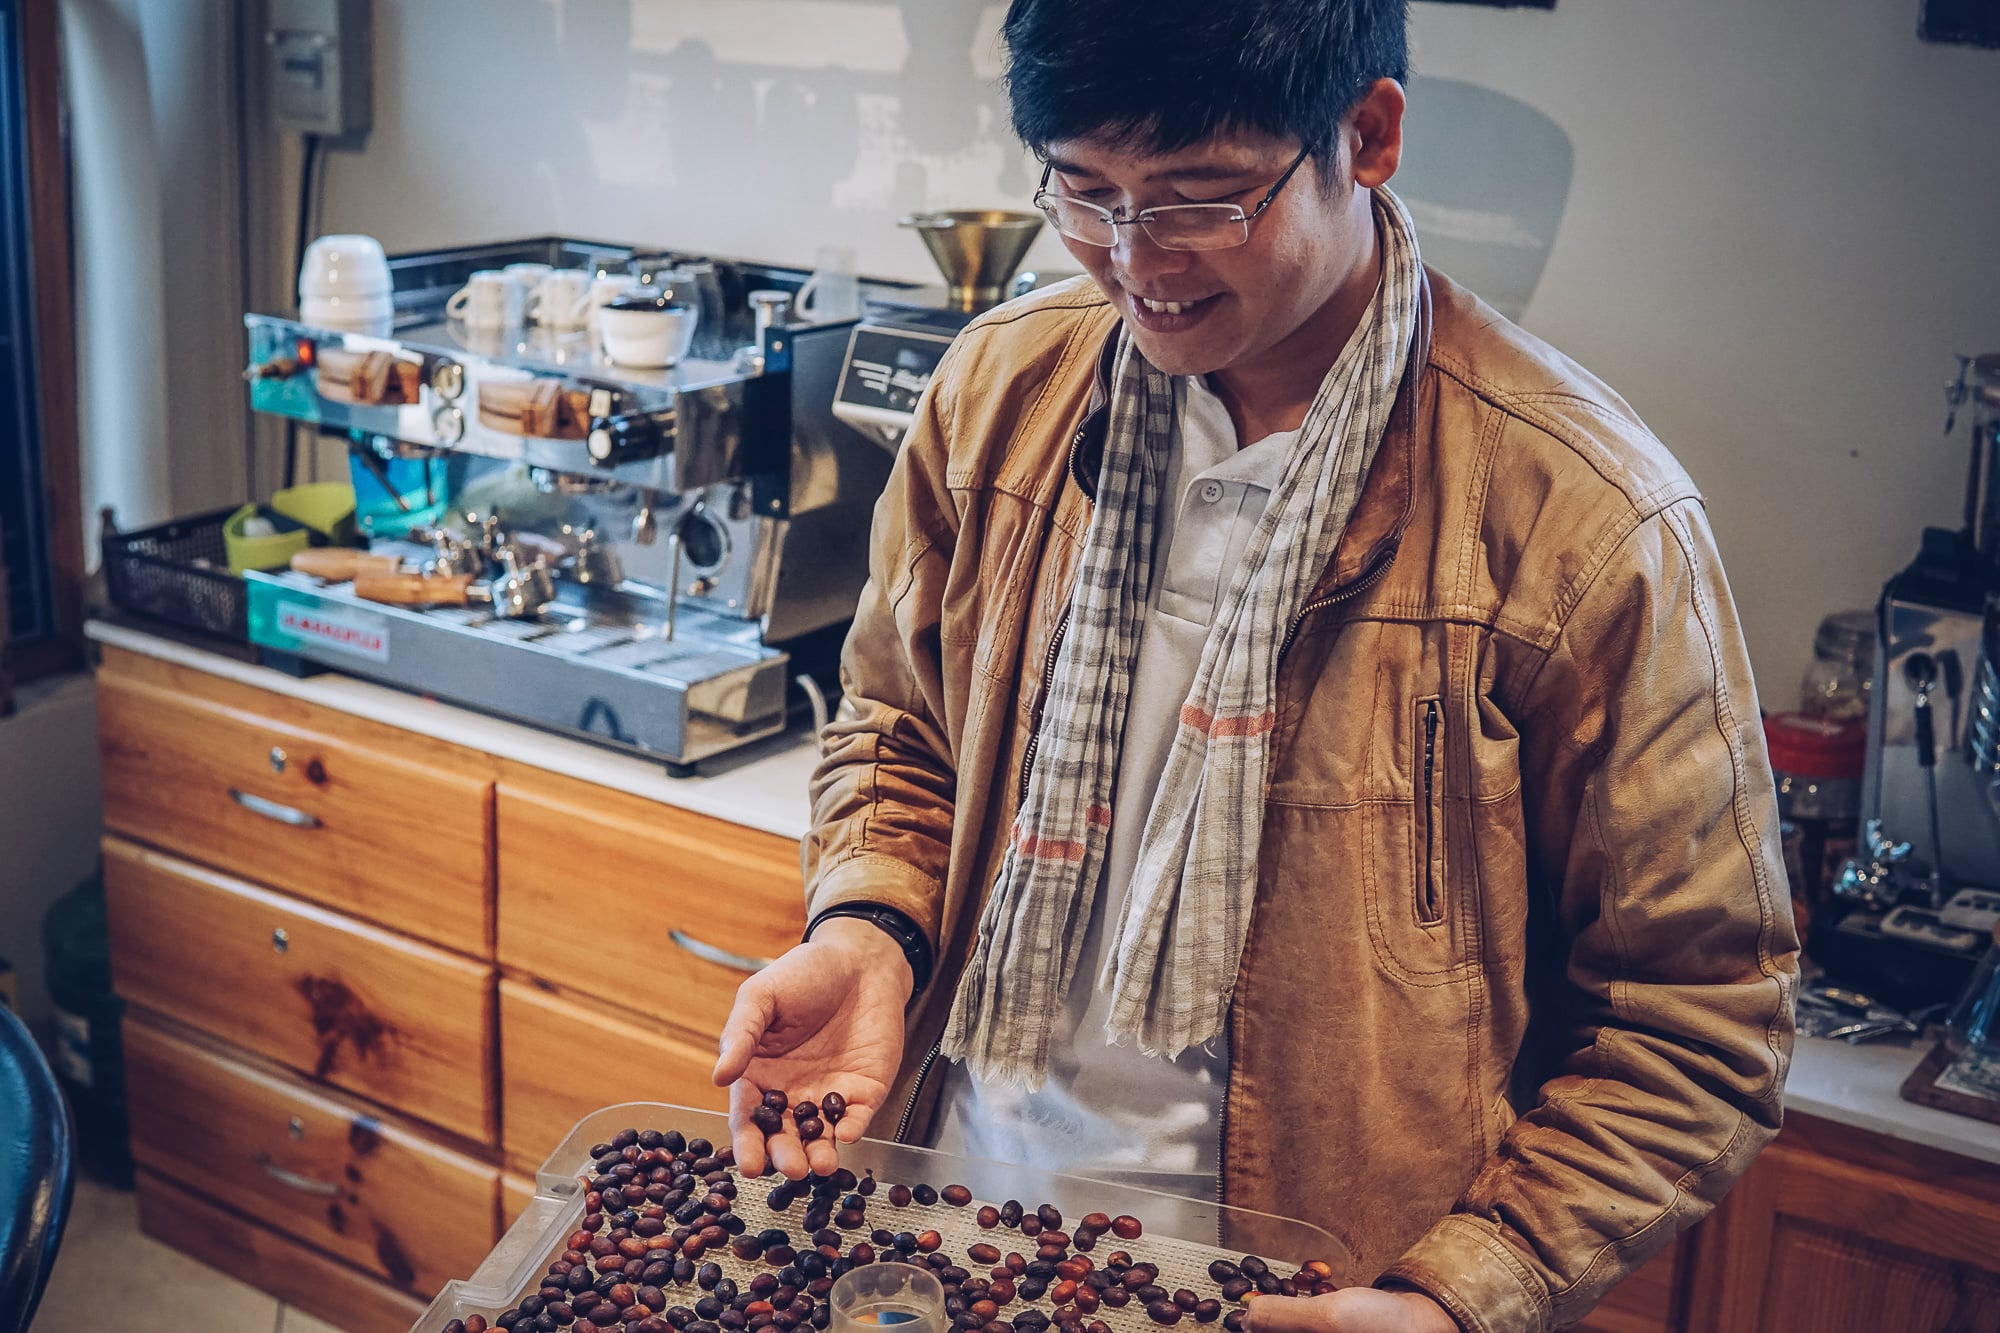 Duy Ho's Intense Relationship With Coffee That Became The Married Beans